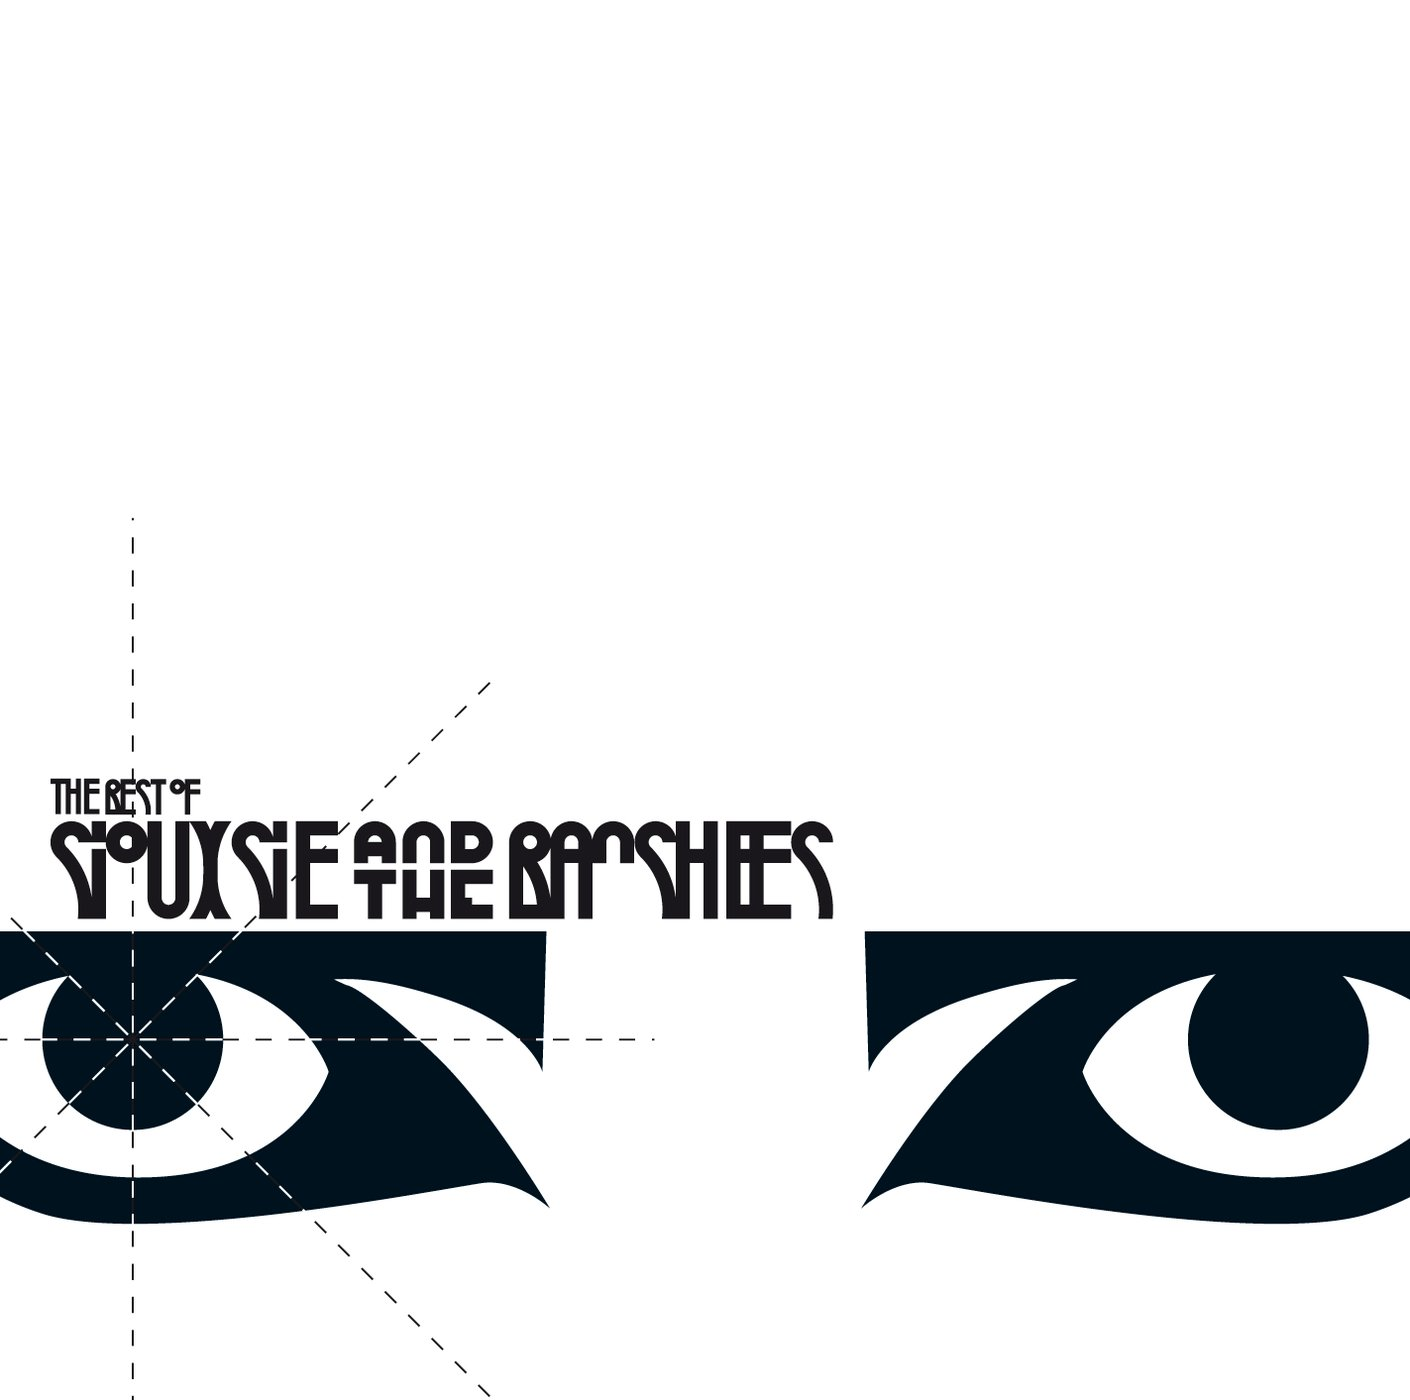 CD : Siouxsie and the Banshees - The Best Of Siouxsie and The Banshees